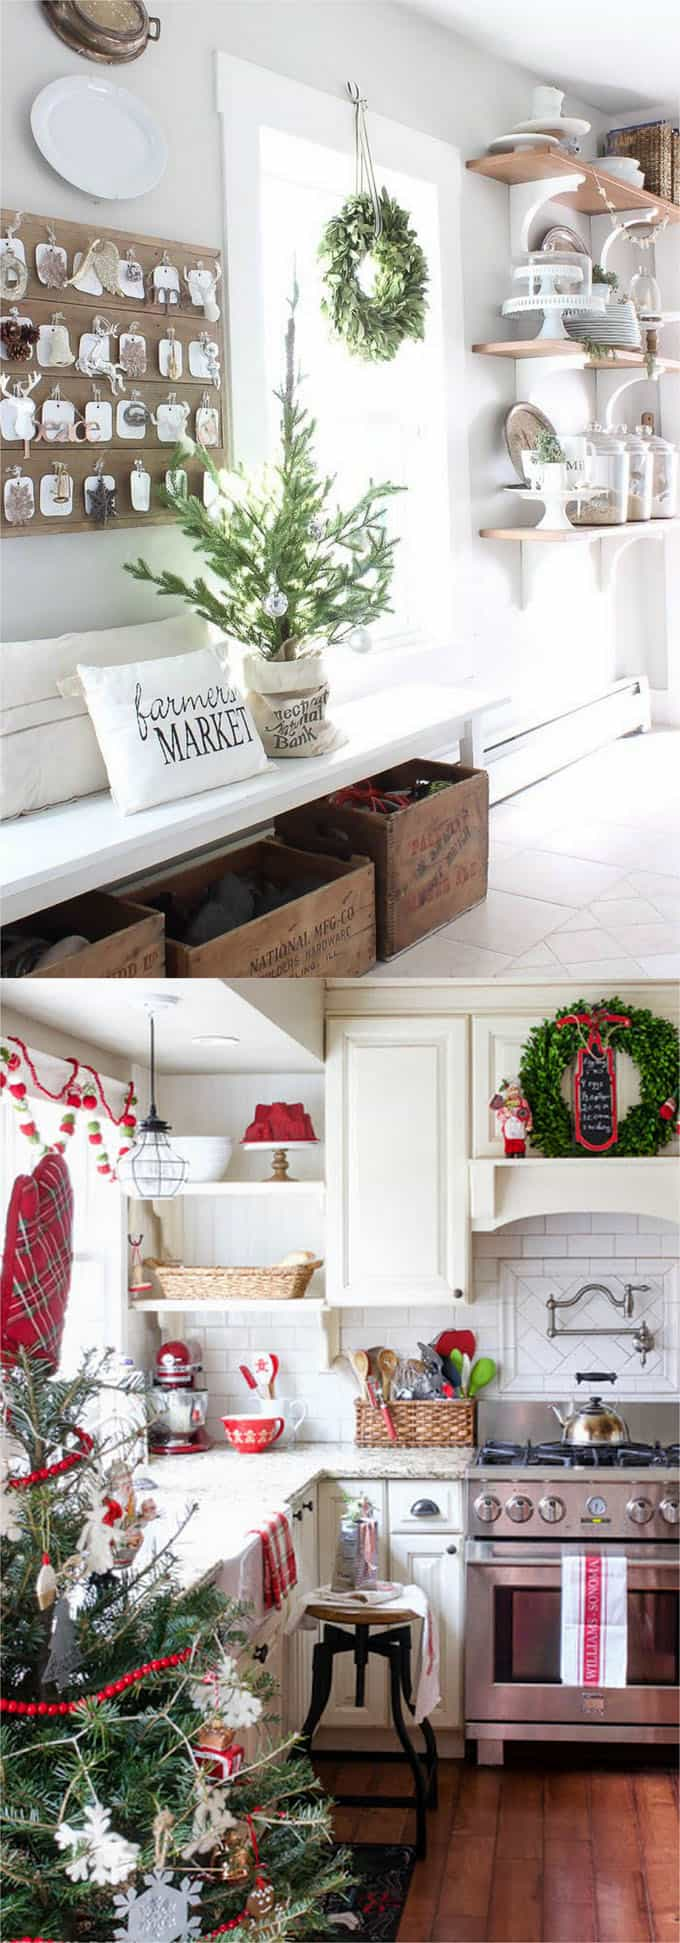 100 favorite christmas decorating ideas every room apieceofrainbow 3 - 100+ Favorite Christmas Decorating Ideas For Every Room in Your Home : Part 2